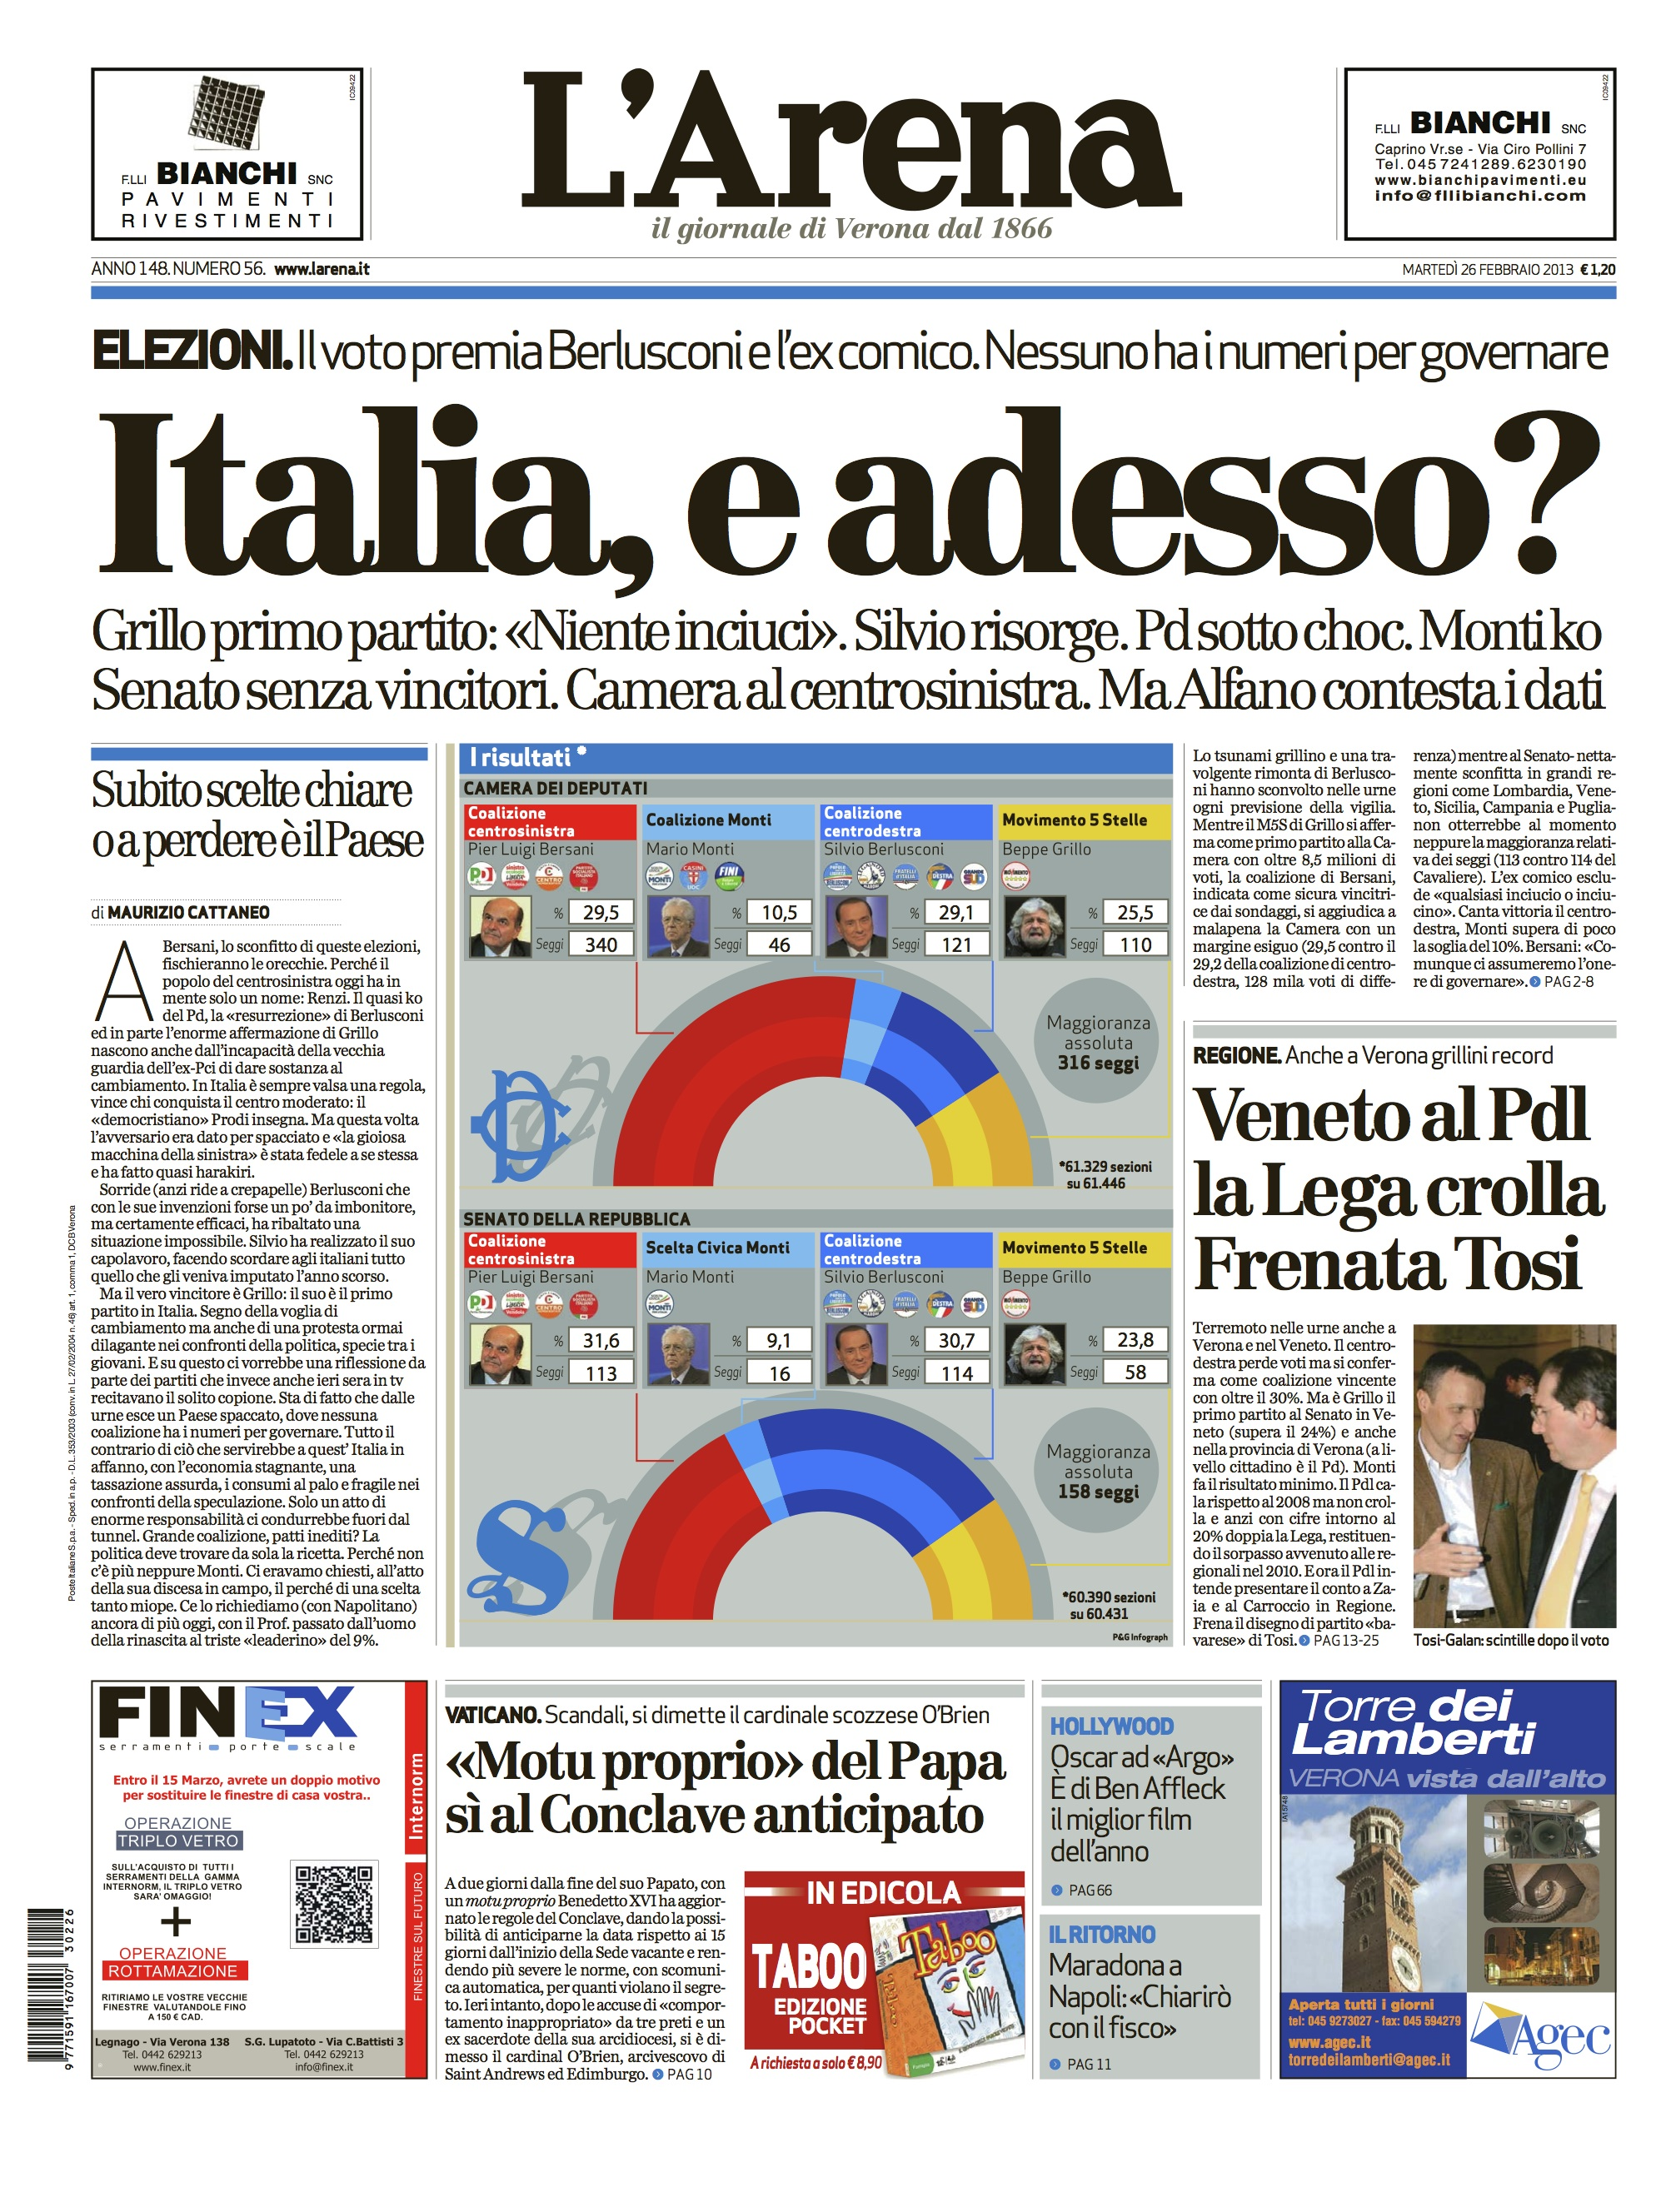 L'arena Italy elections